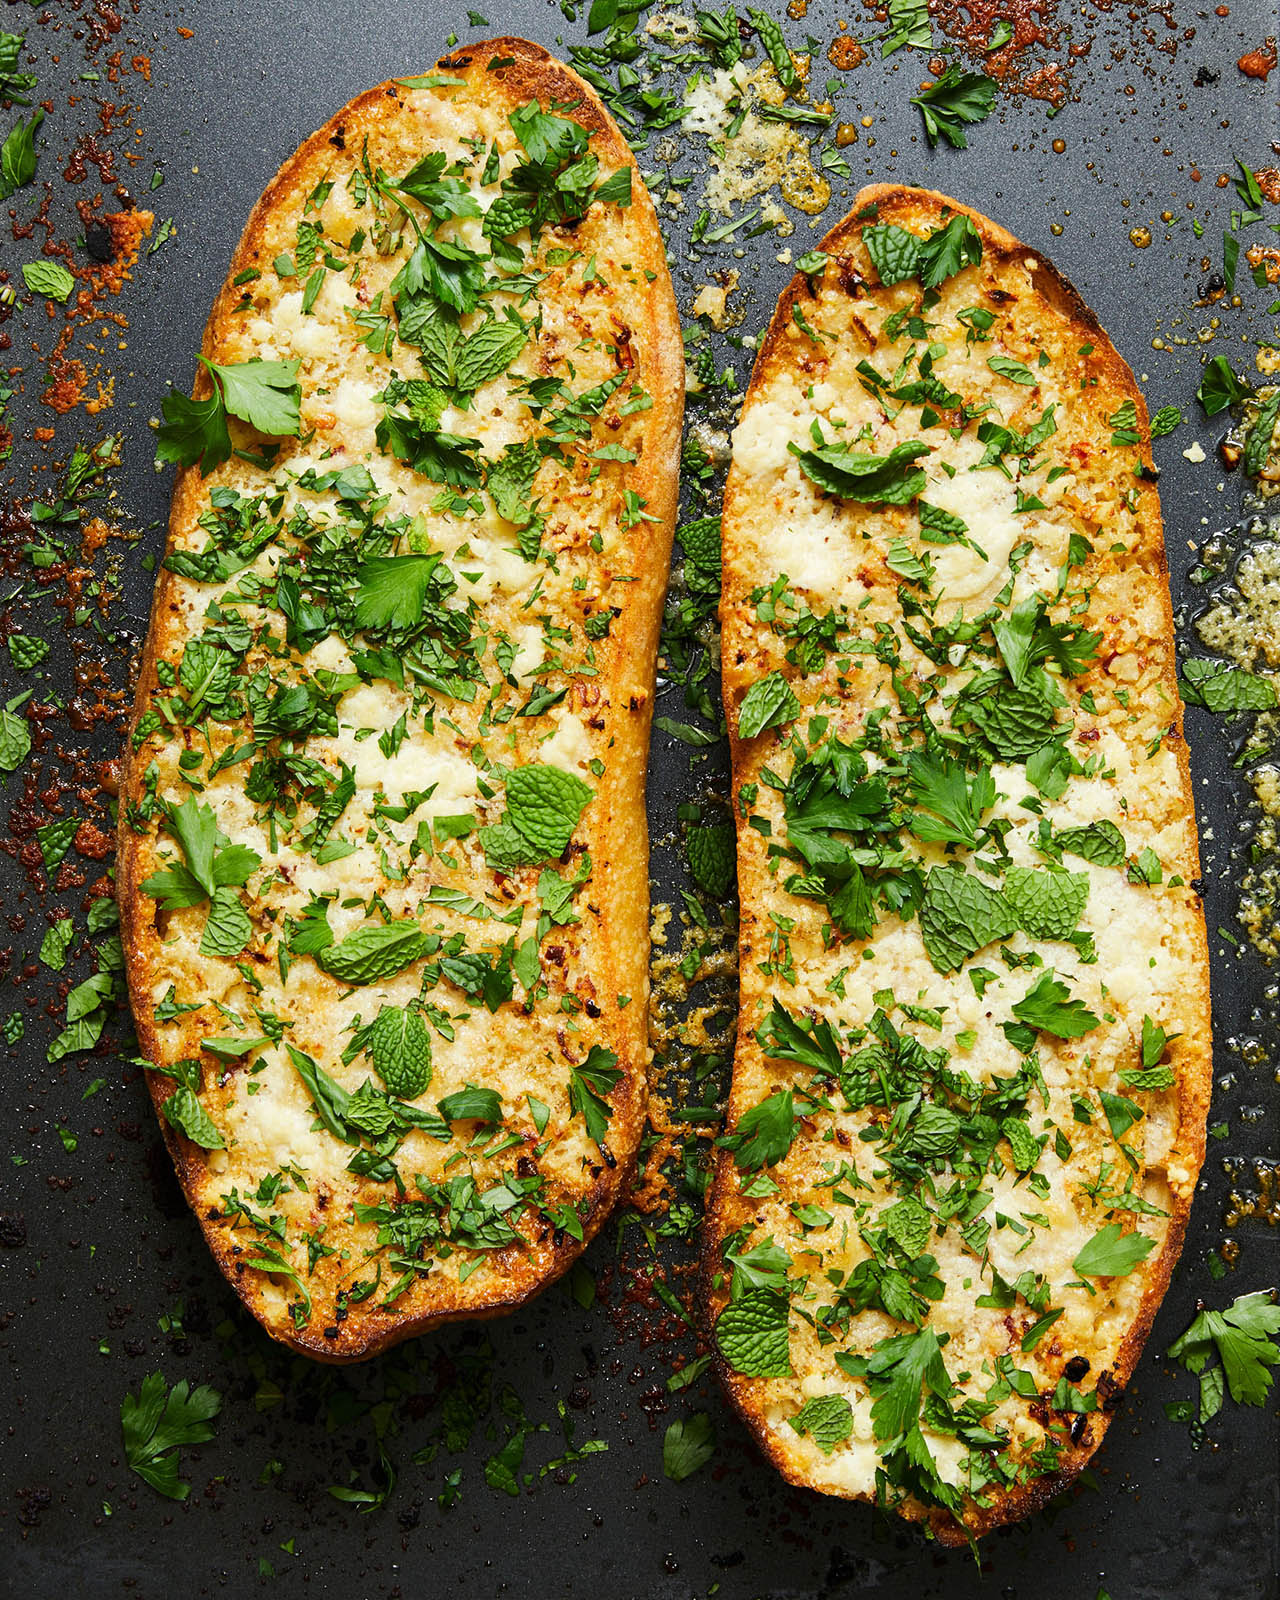 garlic bread with mint and parsley